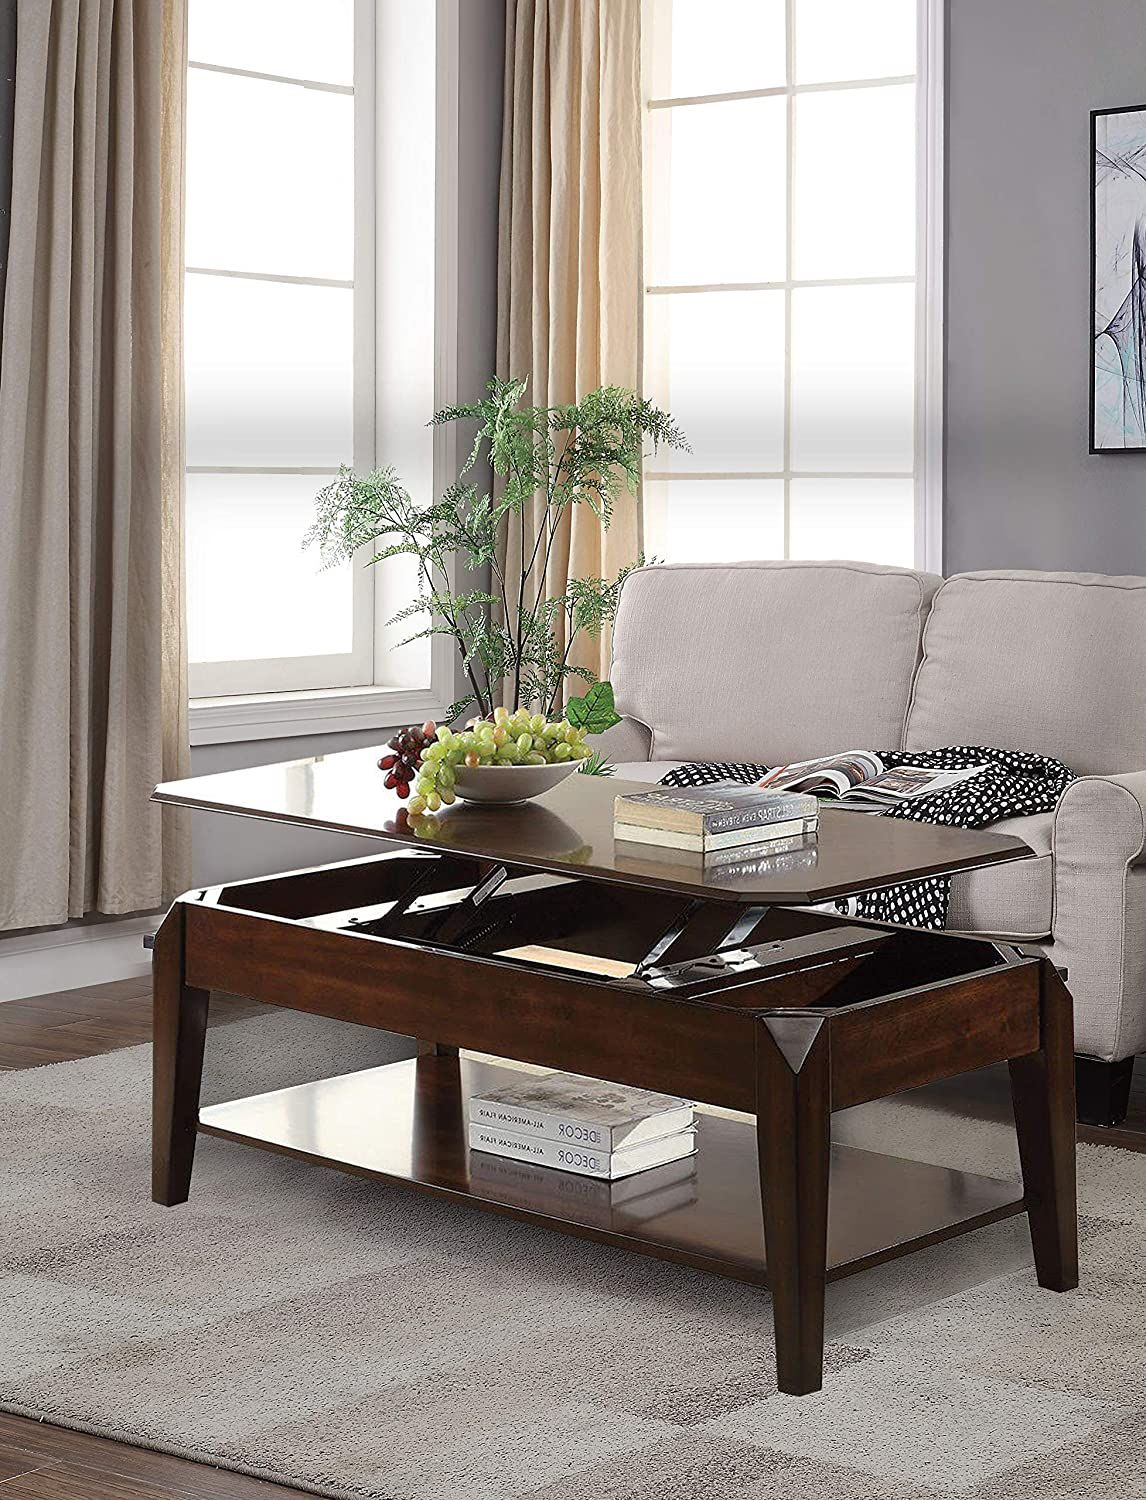 Henf Lift Top Coffee Table,Wood Home Living Room M